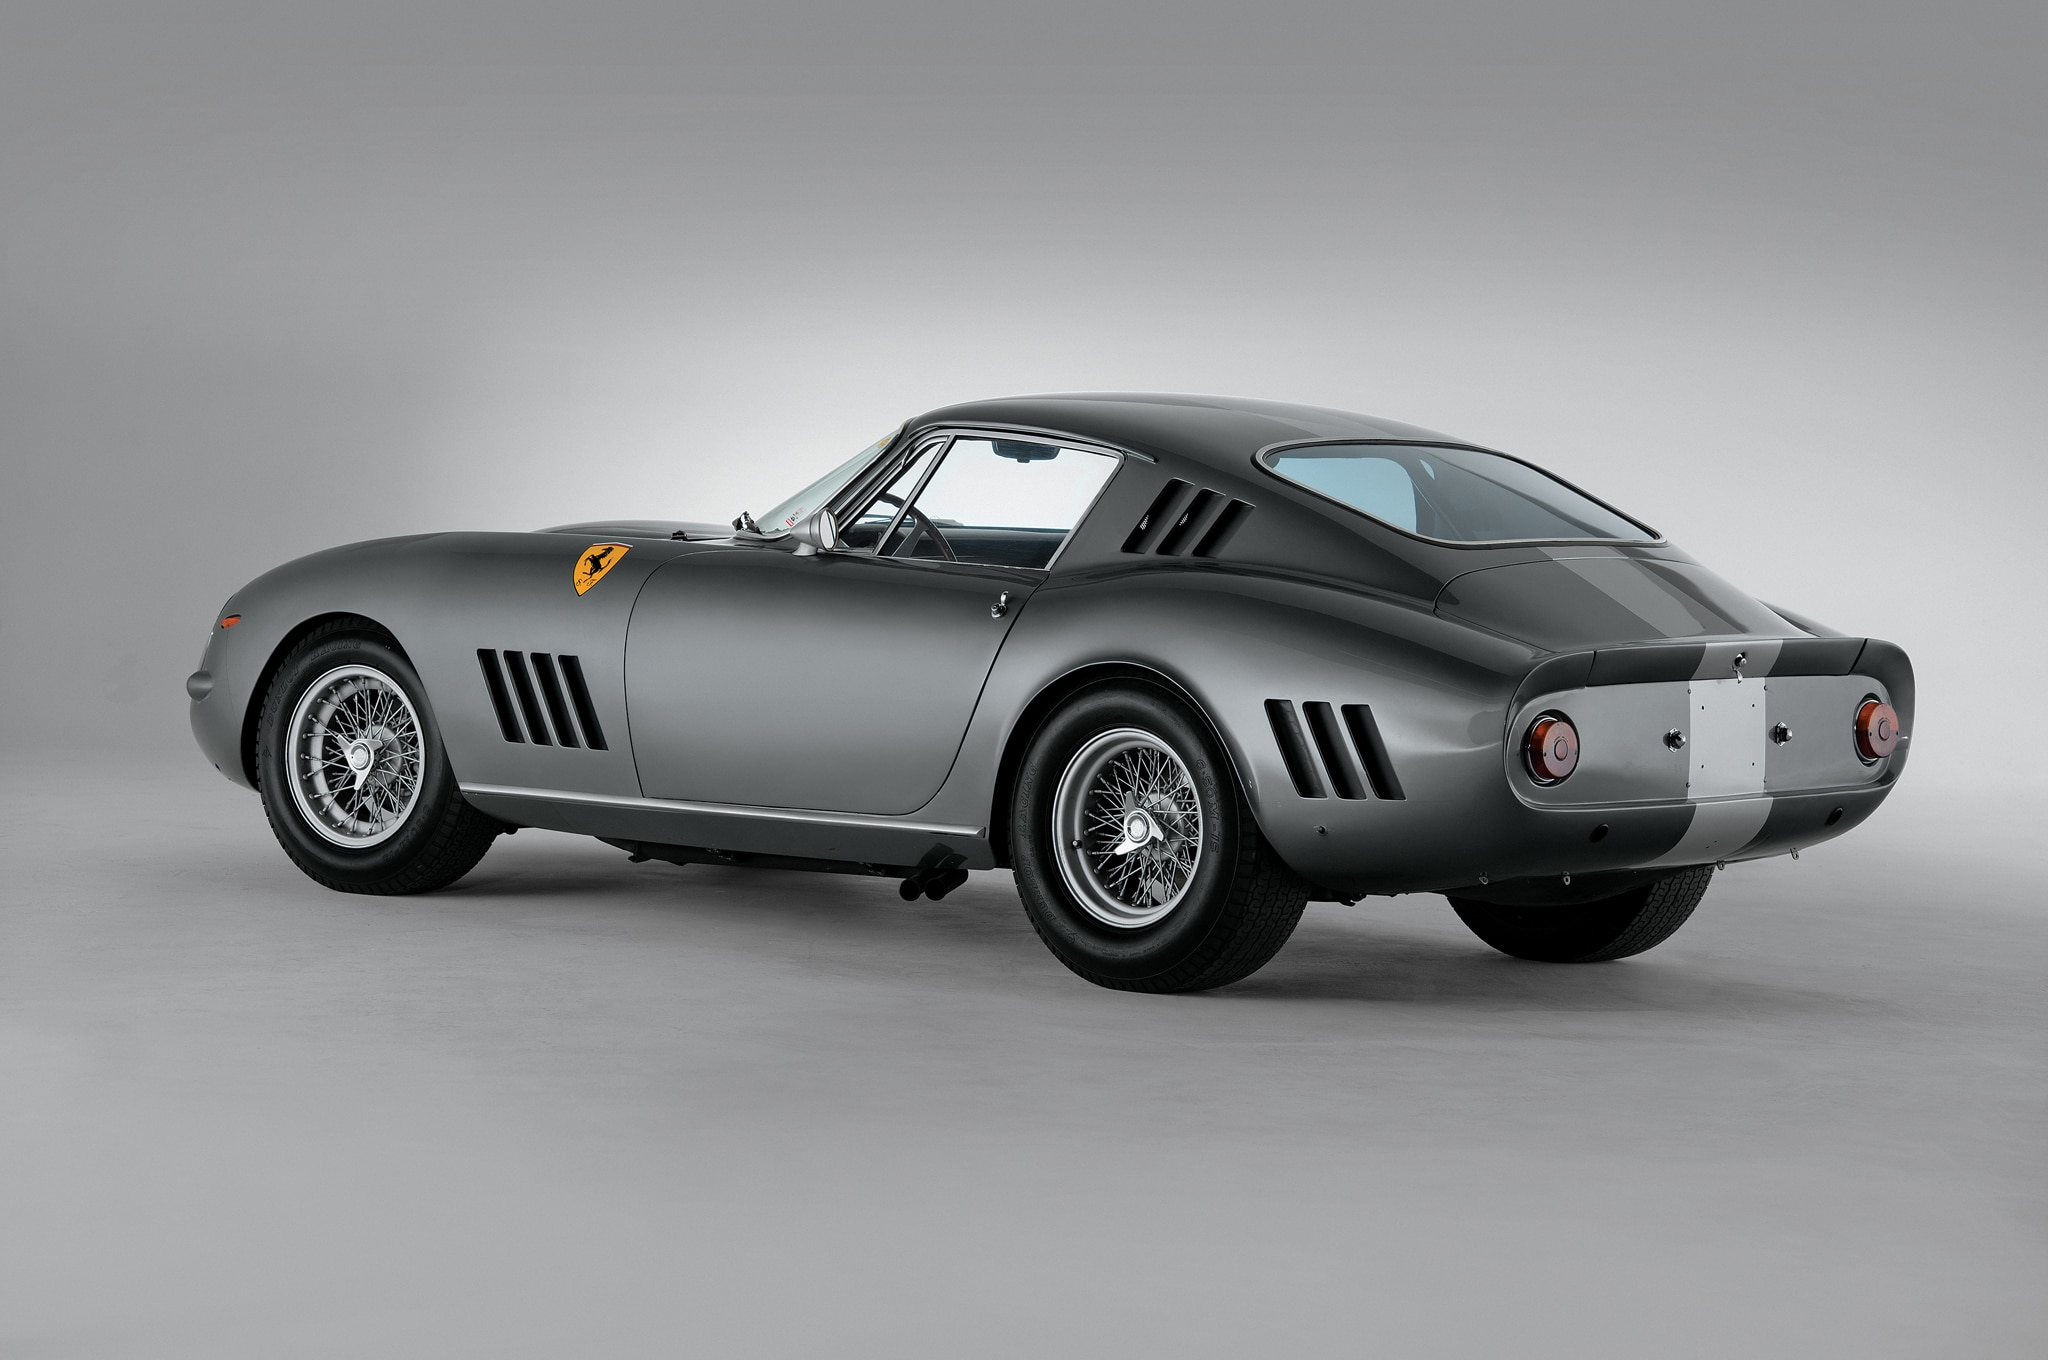 1964 Ferrari 275 Gtb C Speciale 02 Rear Three Quarter1